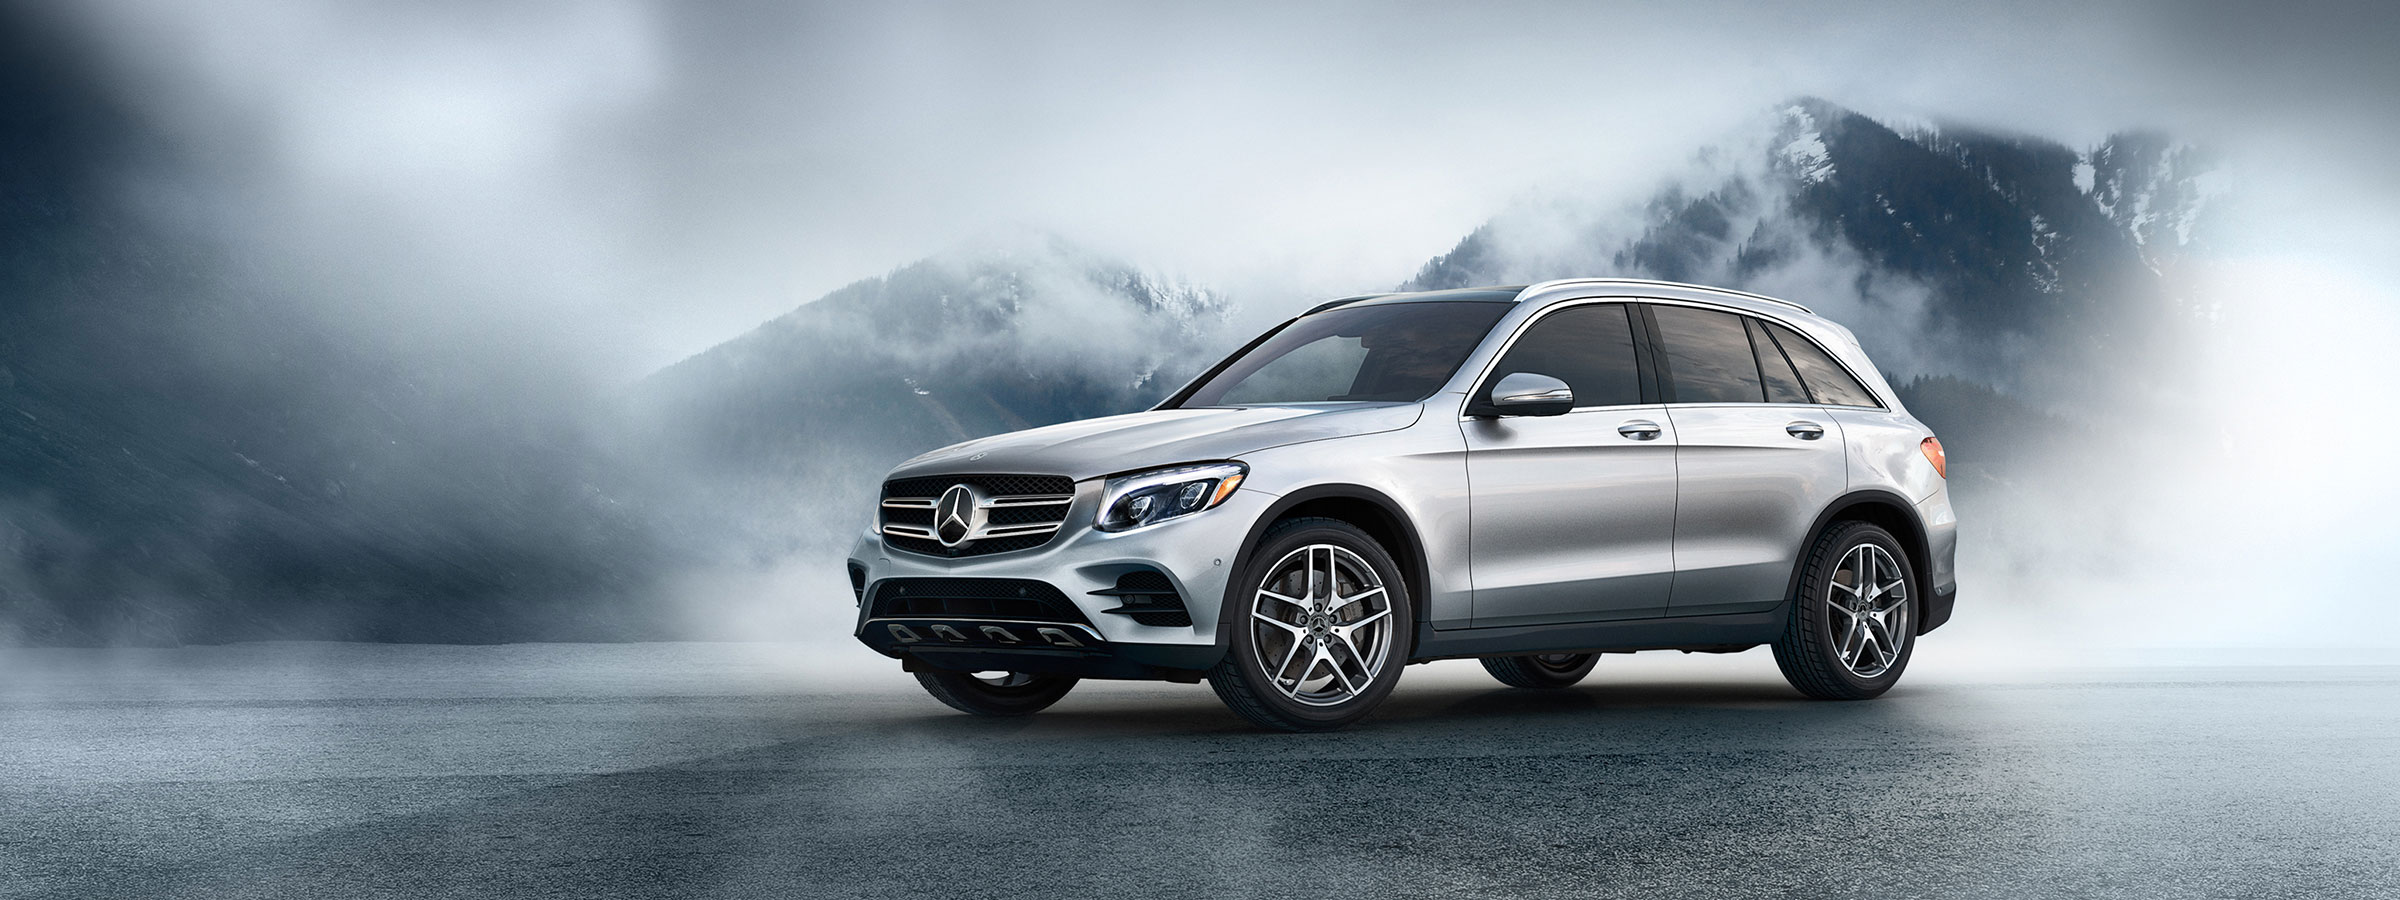 2019 Mercedes-Benz GLC SUV Carousel Image